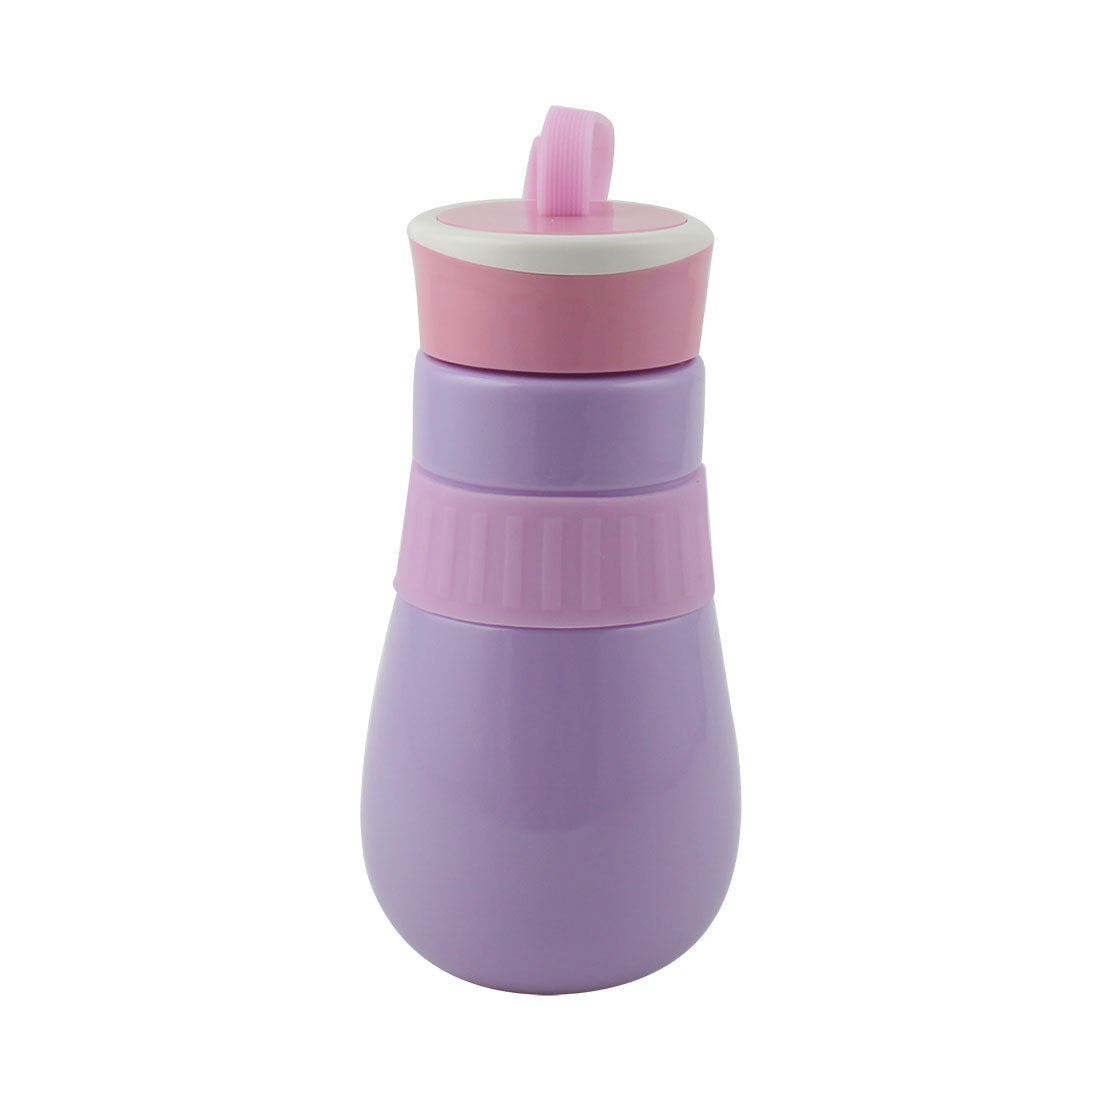 Student Travel Plastic Portable Water Tea Drinking Bottle Mug Sports Hiking Cup Purple 410ml